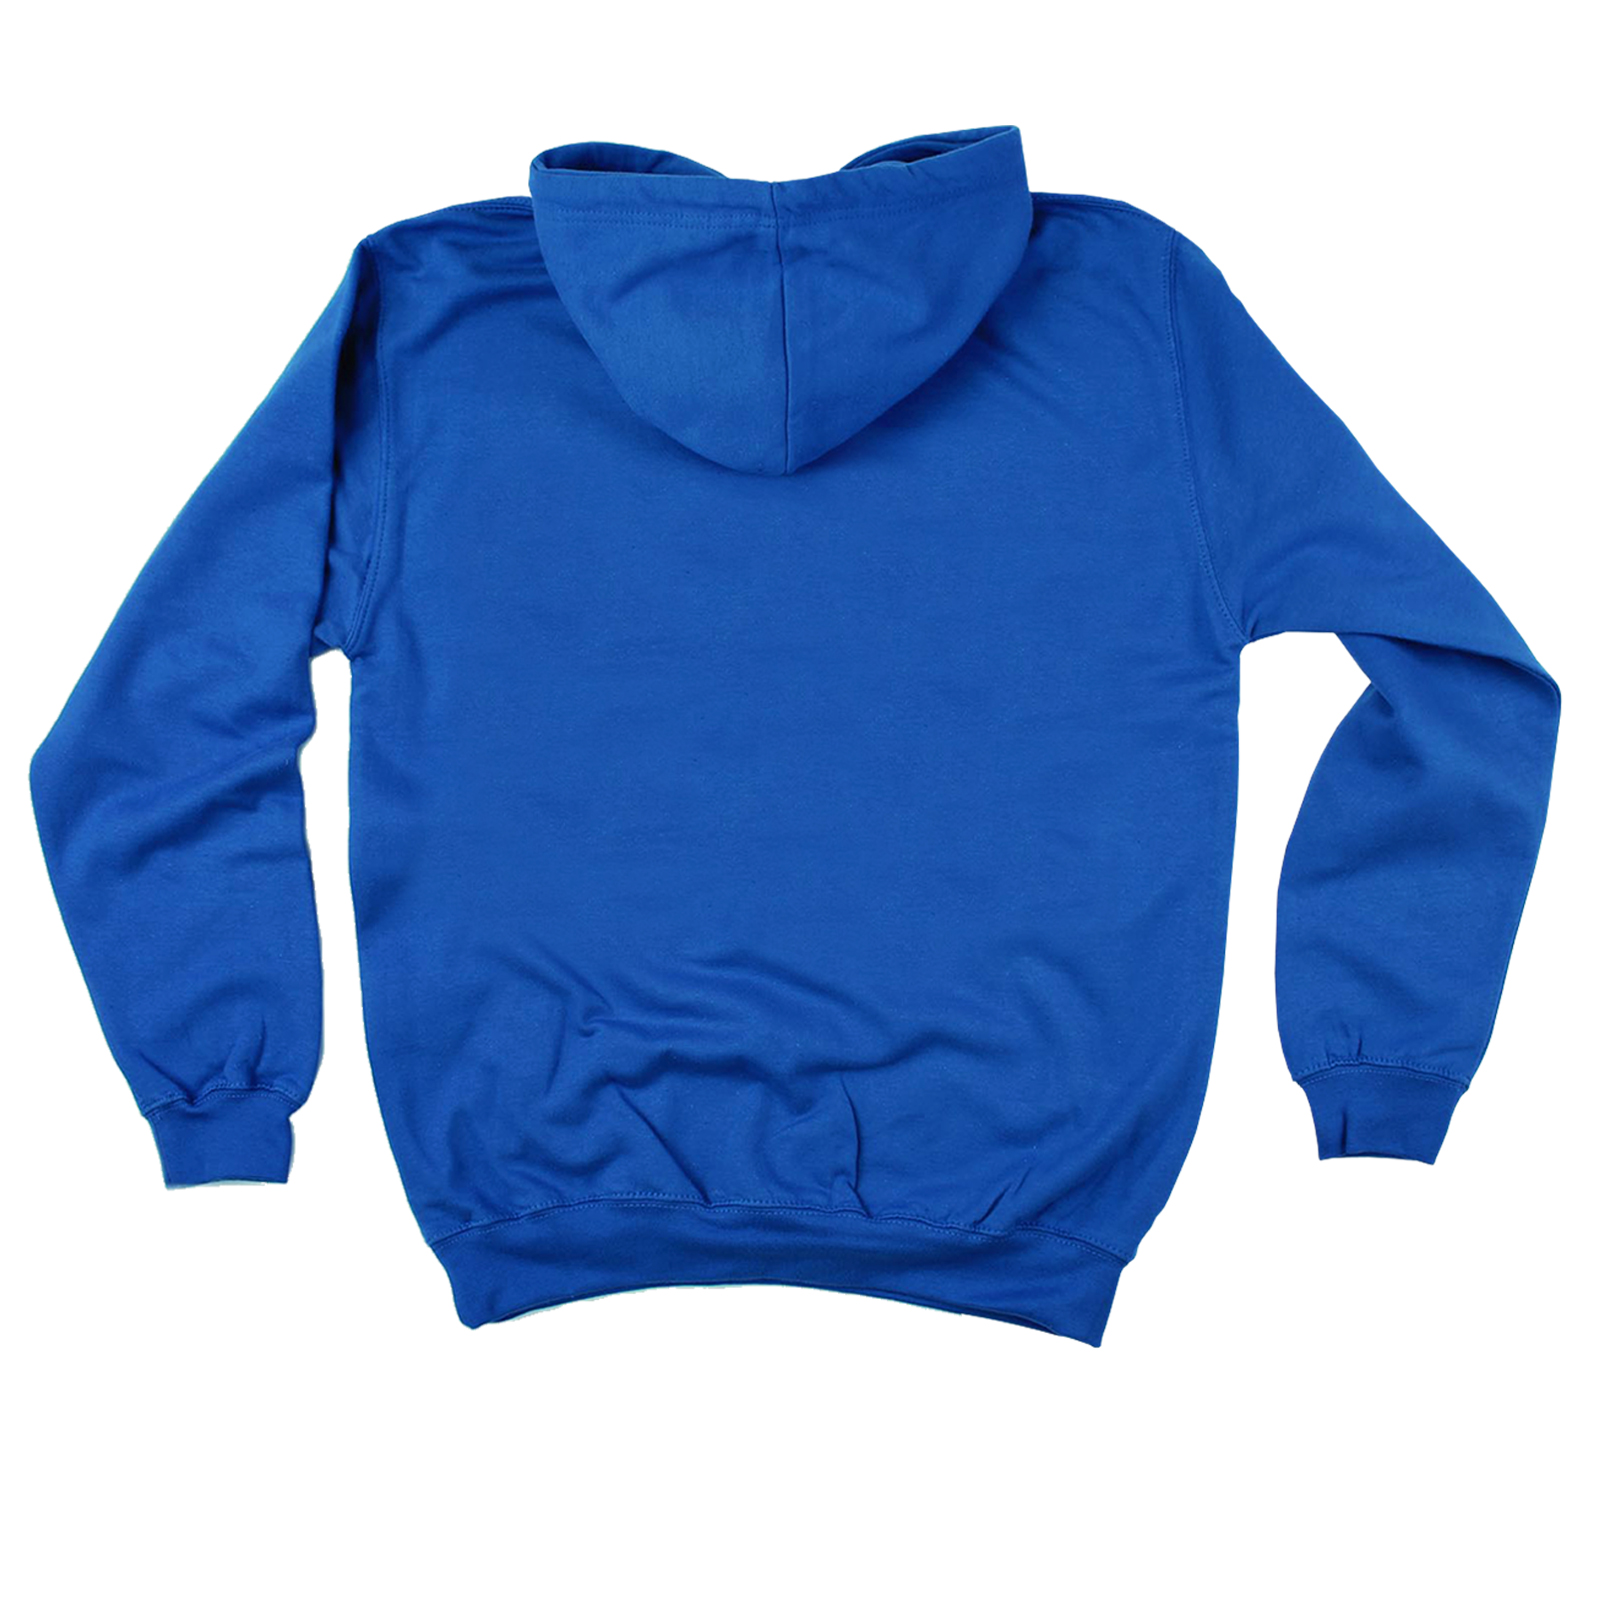 Funny-Novelty-Hoodie-Hoody-hooded-Top-Cat-Enthusiast thumbnail 15